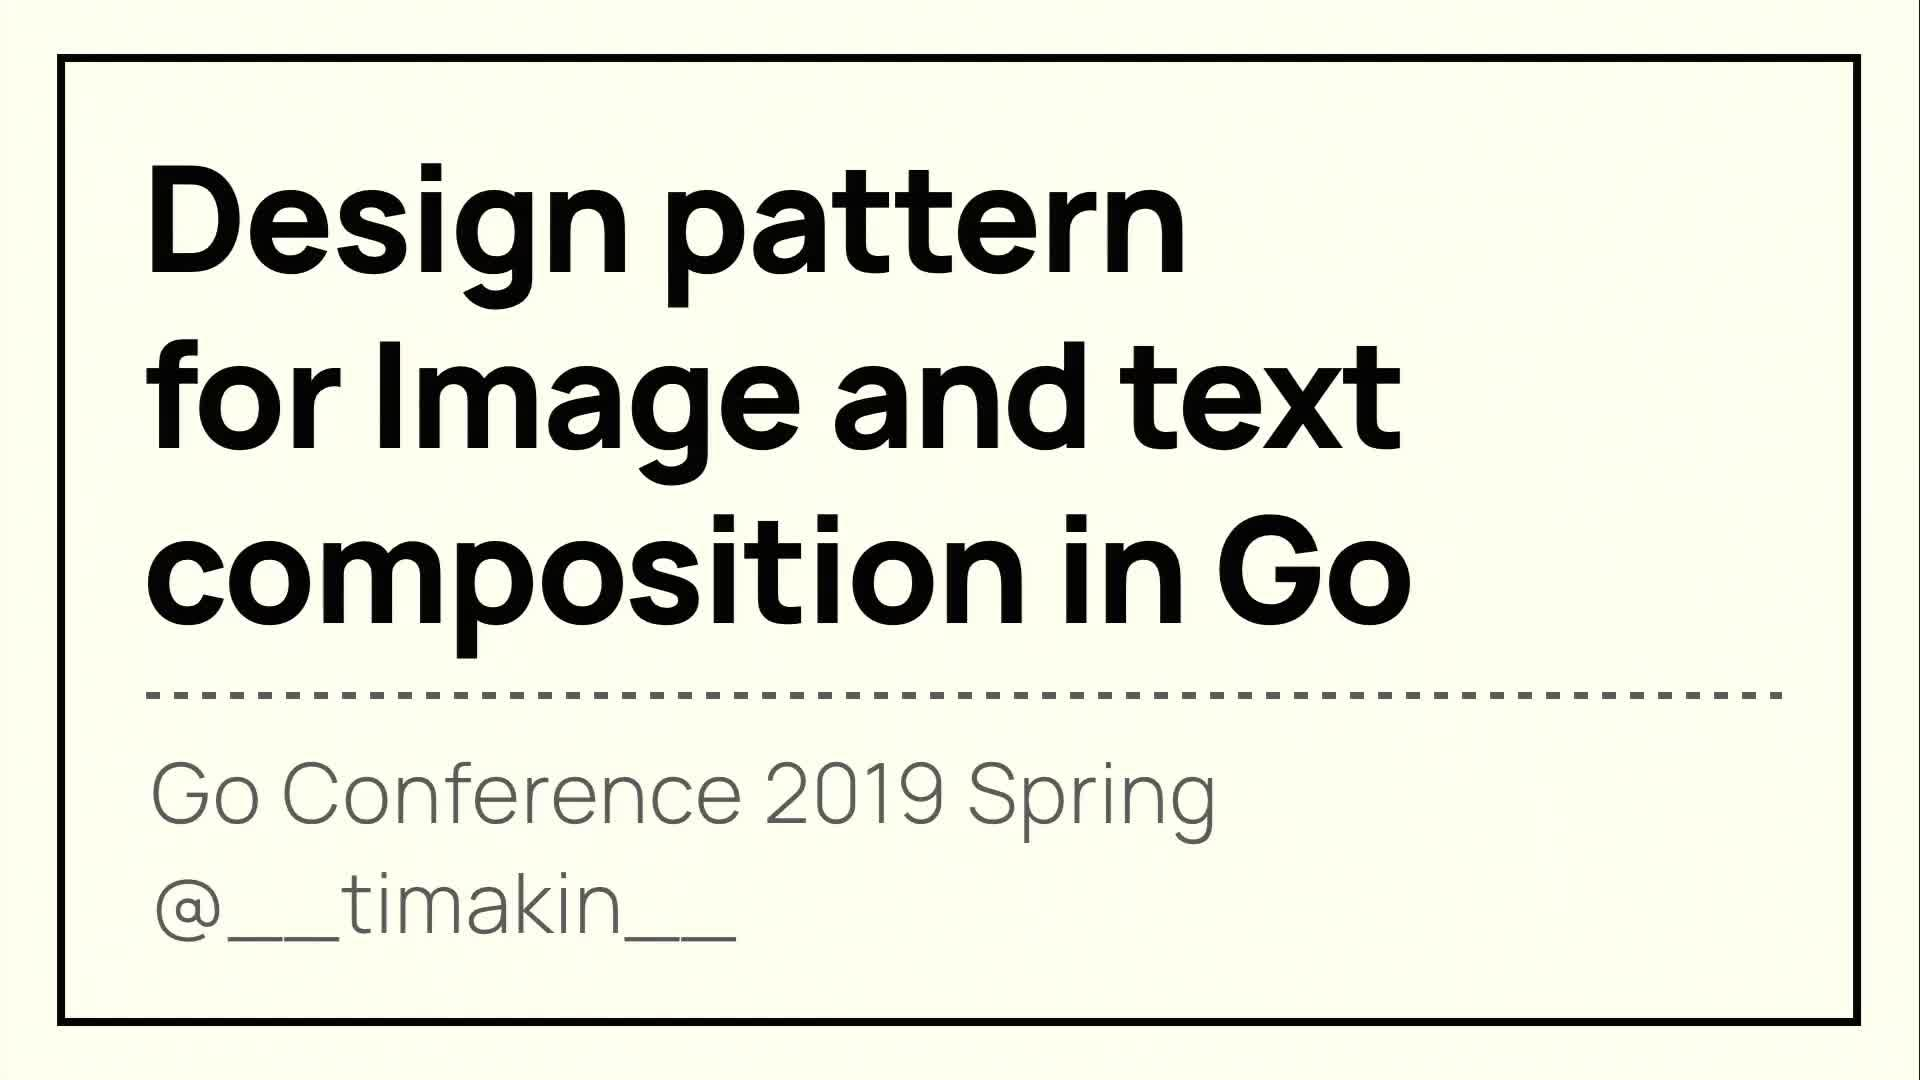 Design Pattern for Image and text composition in Go